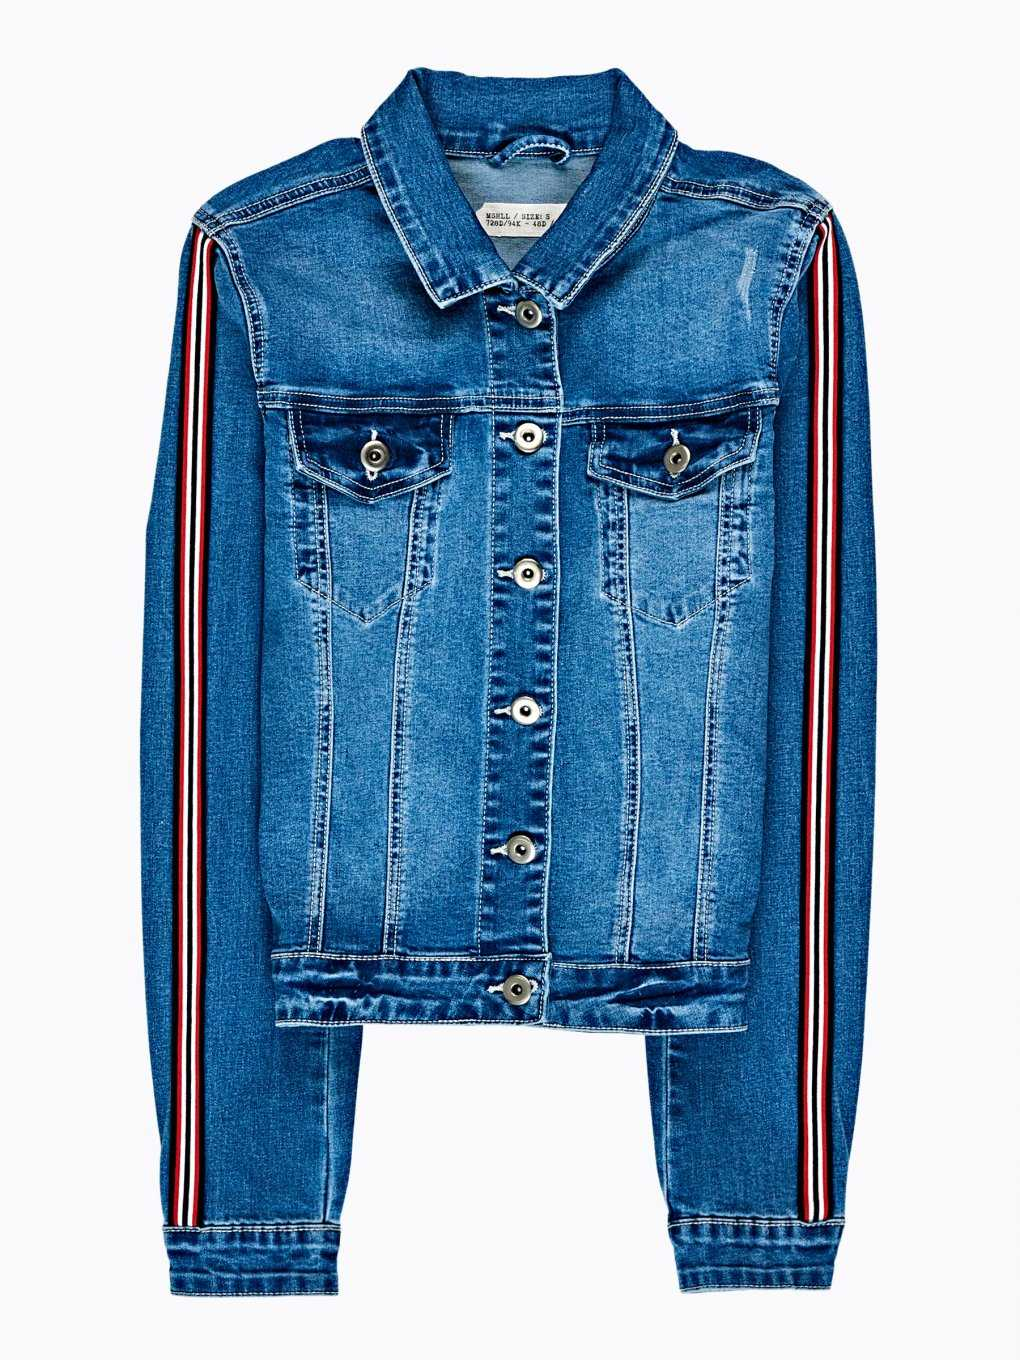 TAPED DENIM JACKET